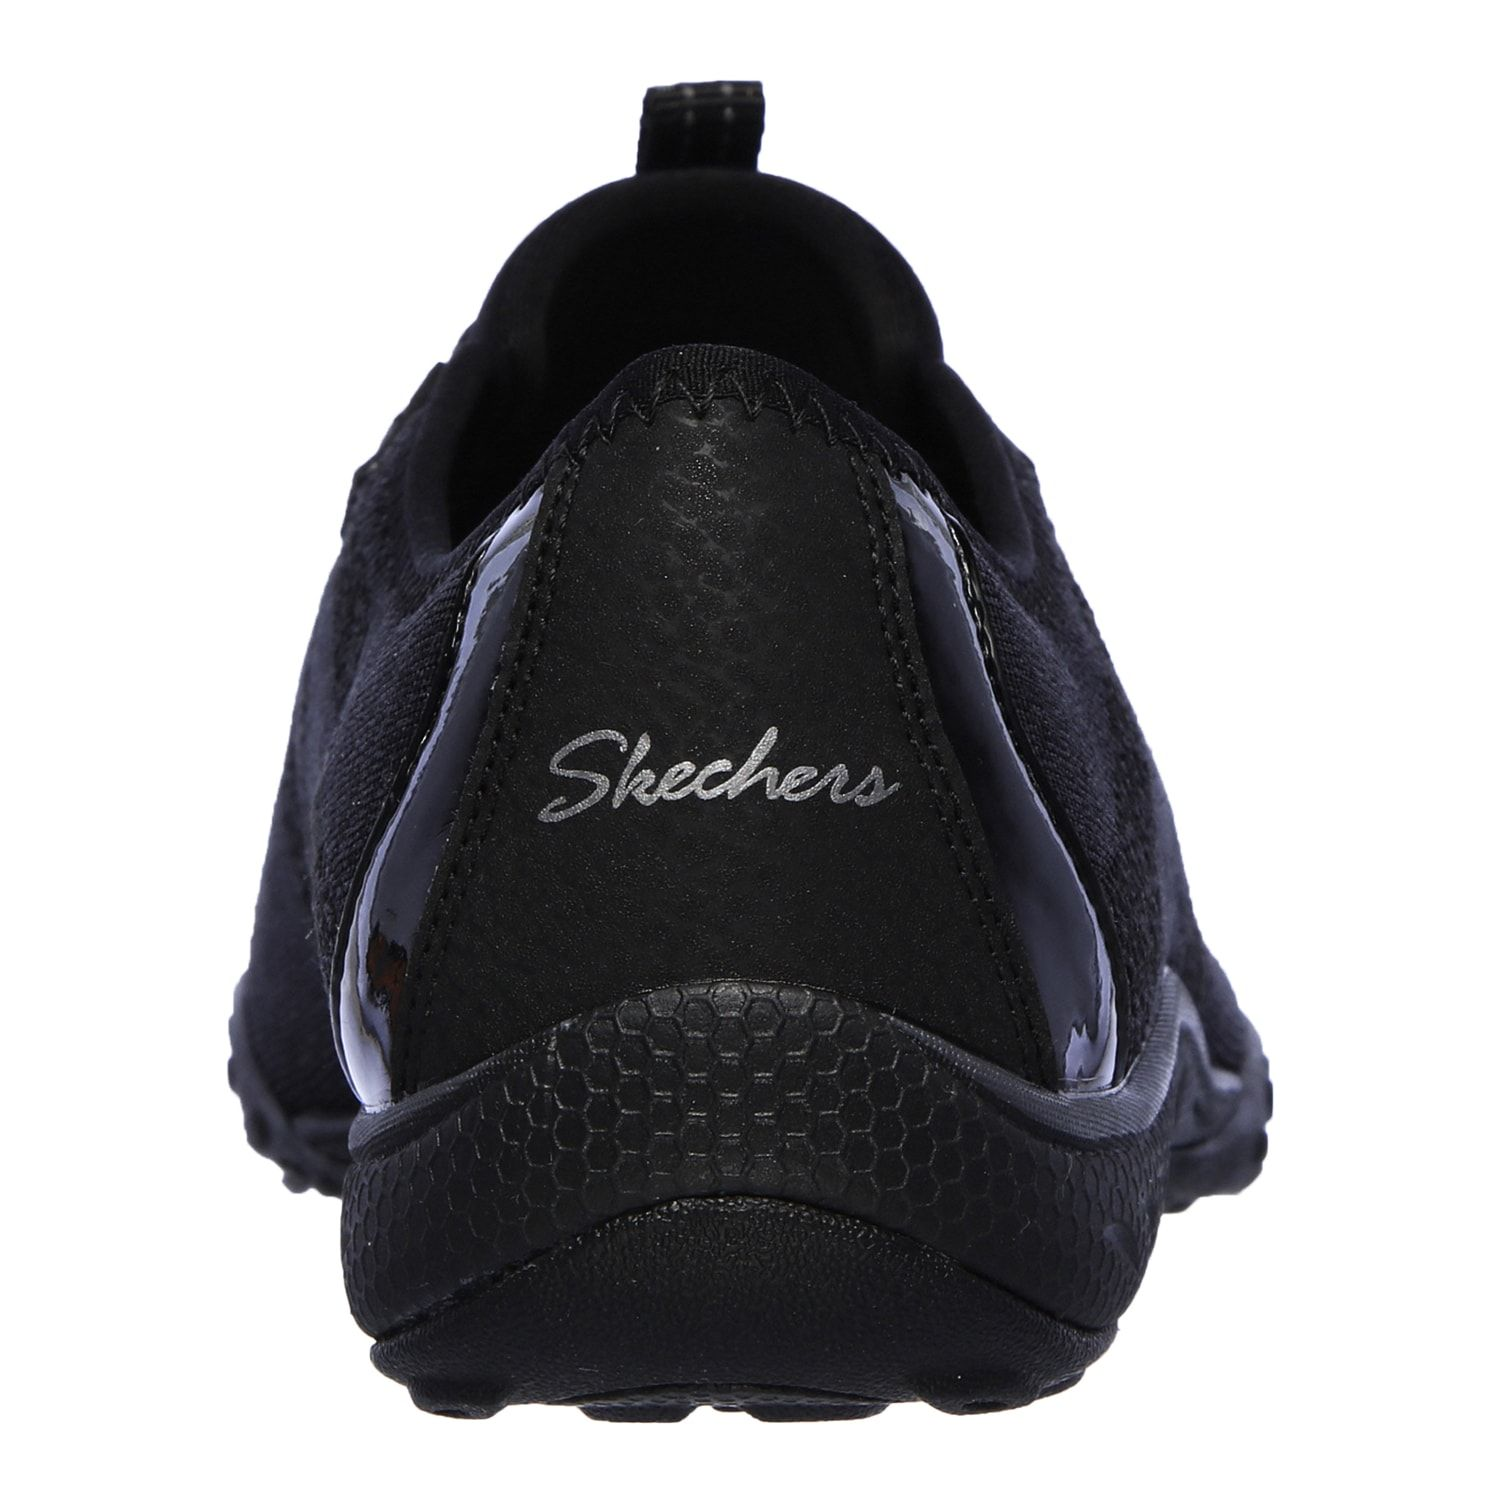 Skechers Relaxed Fit Breathe Easy Opportuknitty Women's Shoe